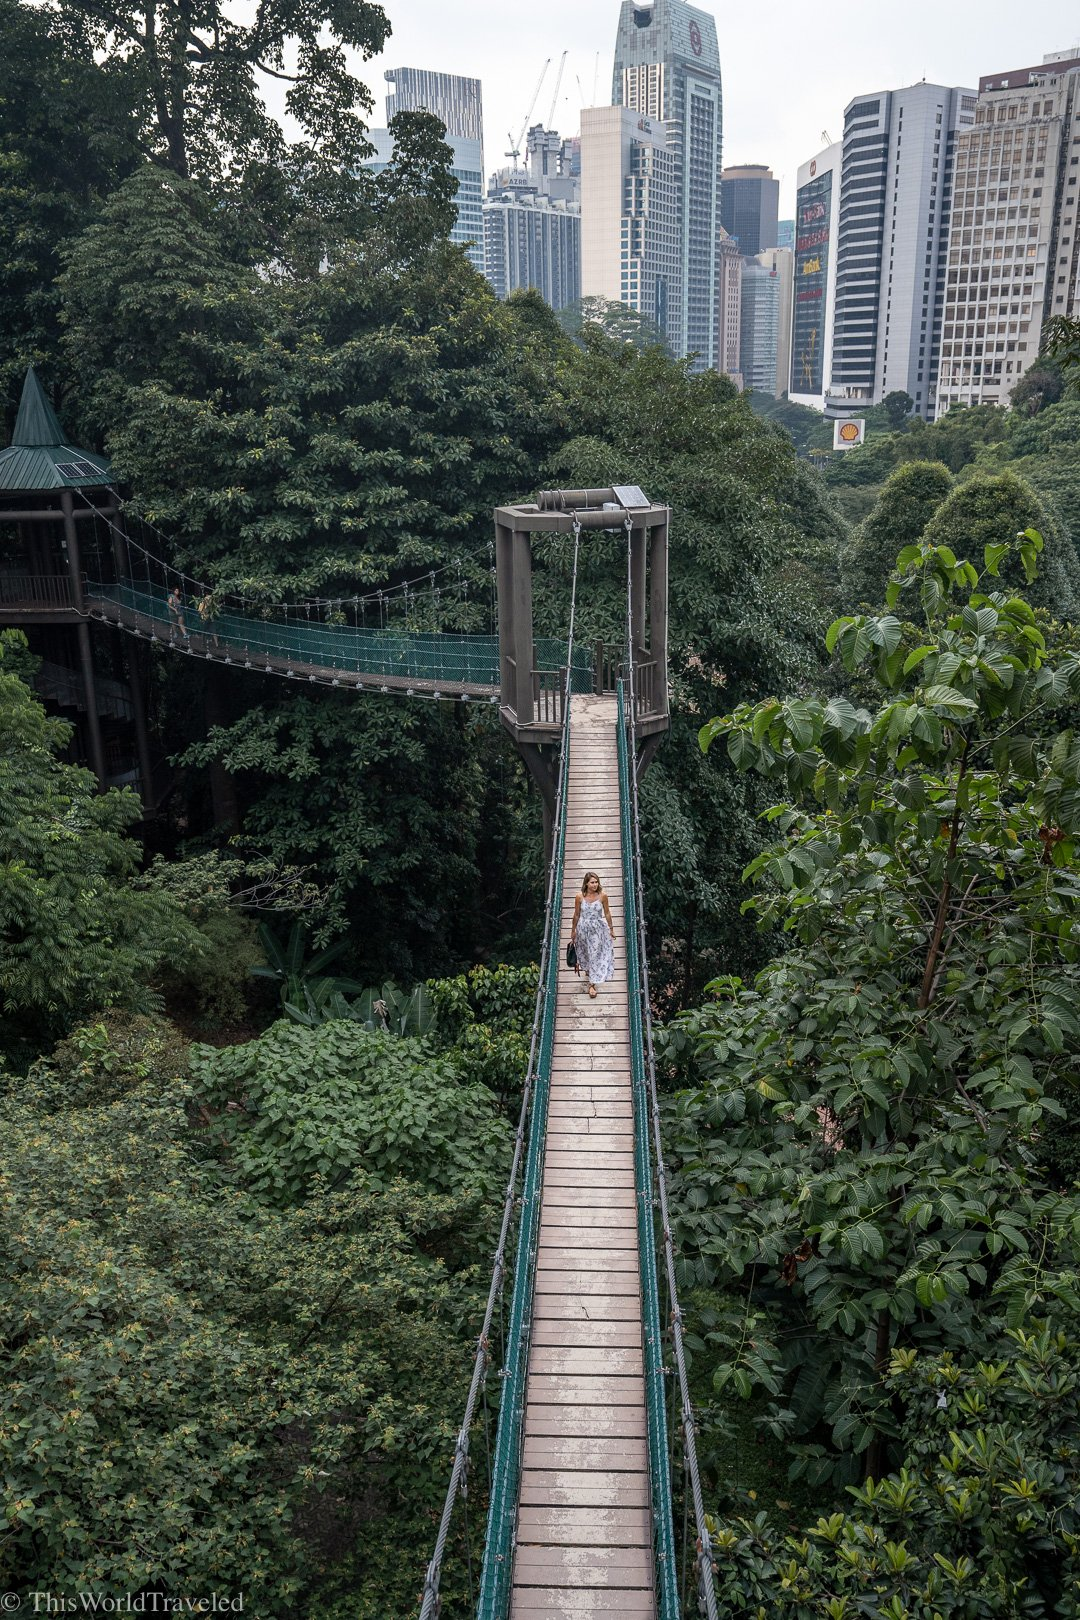 Girl walking along the canopy at the KL Eco Forest Park in Malaysia